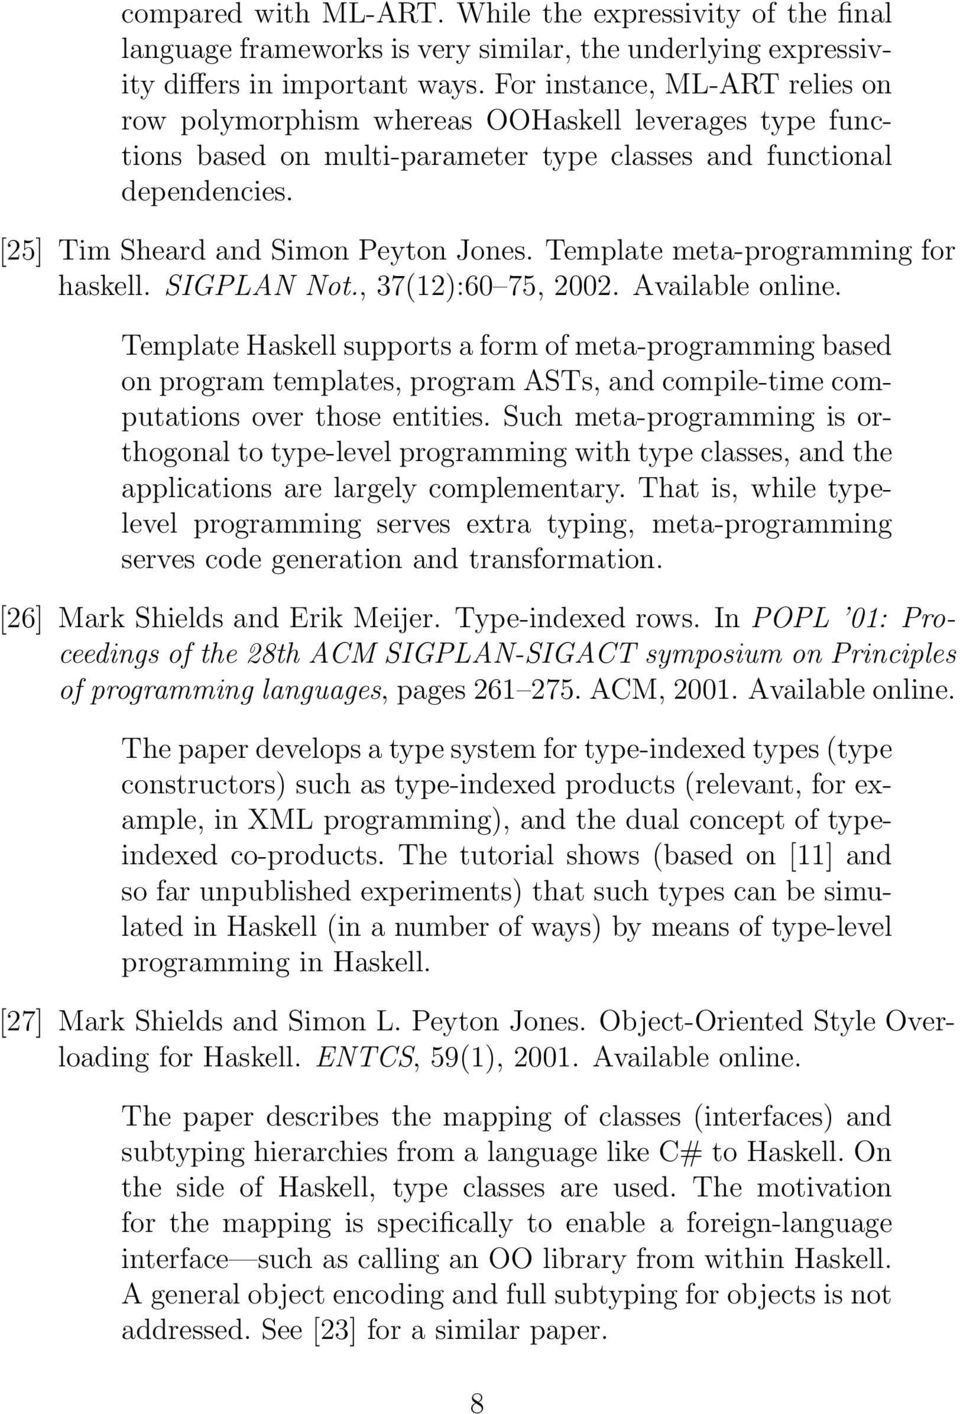 Template meta-programming for haskell. SIGPLAN Not., 37(12):60 75, 2002. Available online.